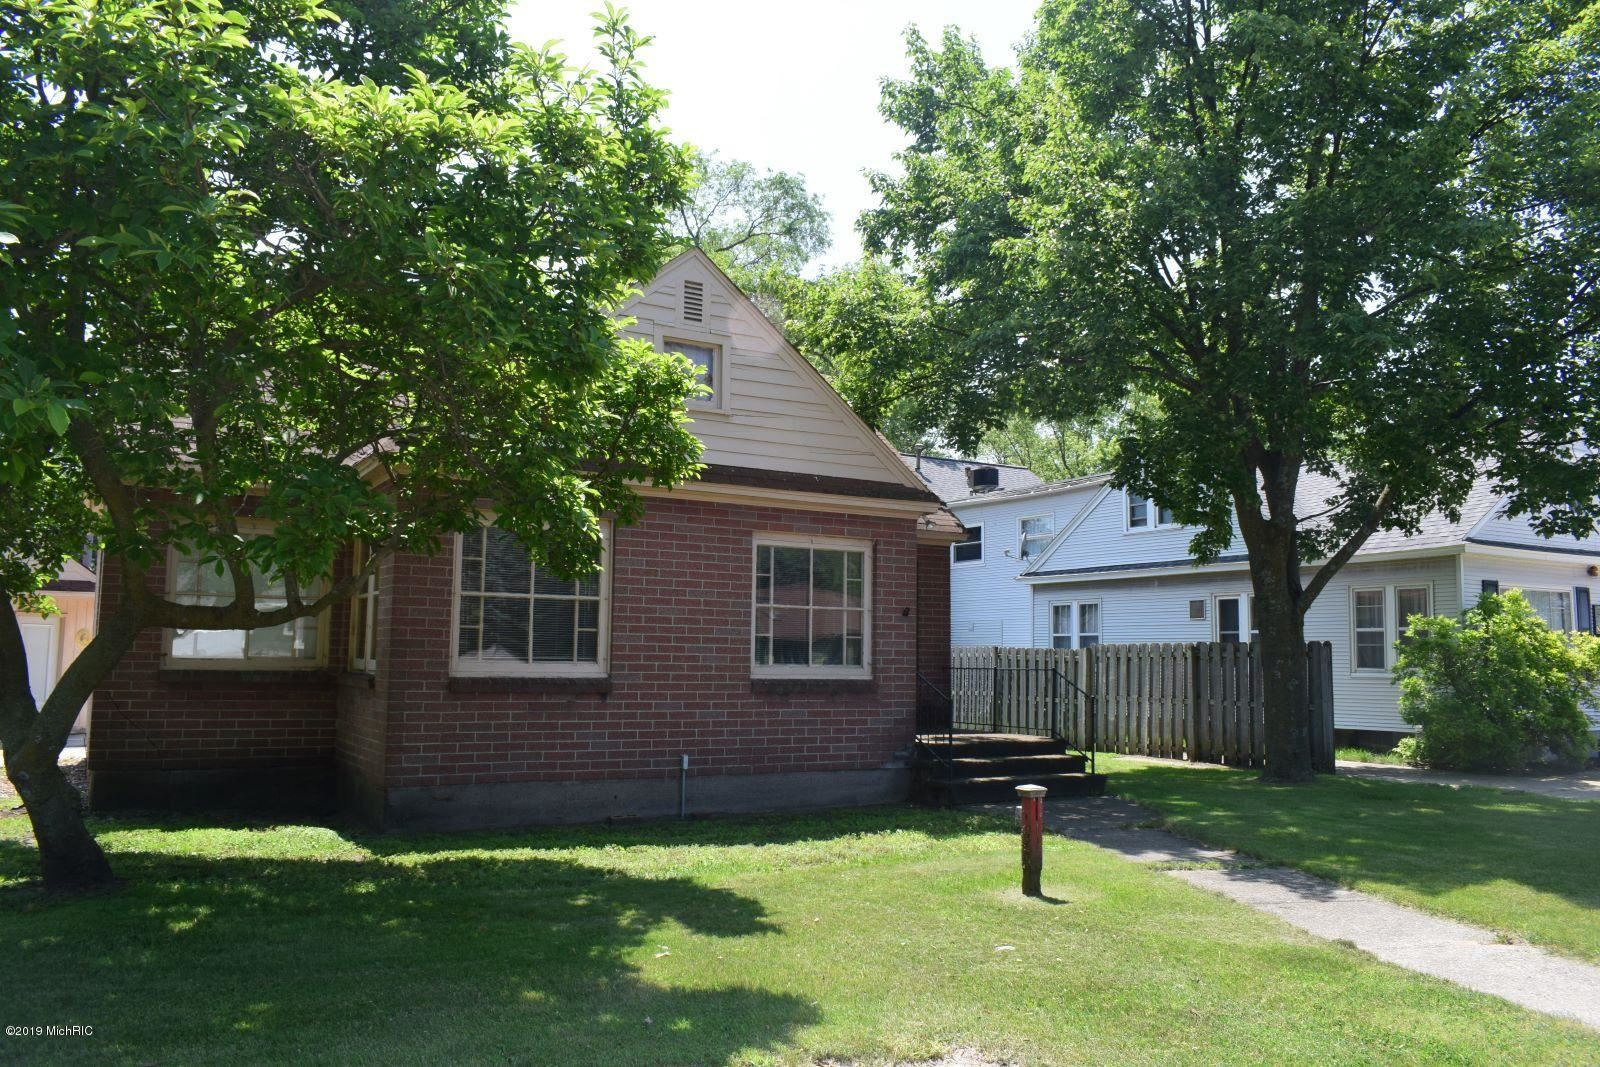 914 E Ludington Avenue, Ludington, MI 49431 - MLS#: 19031819